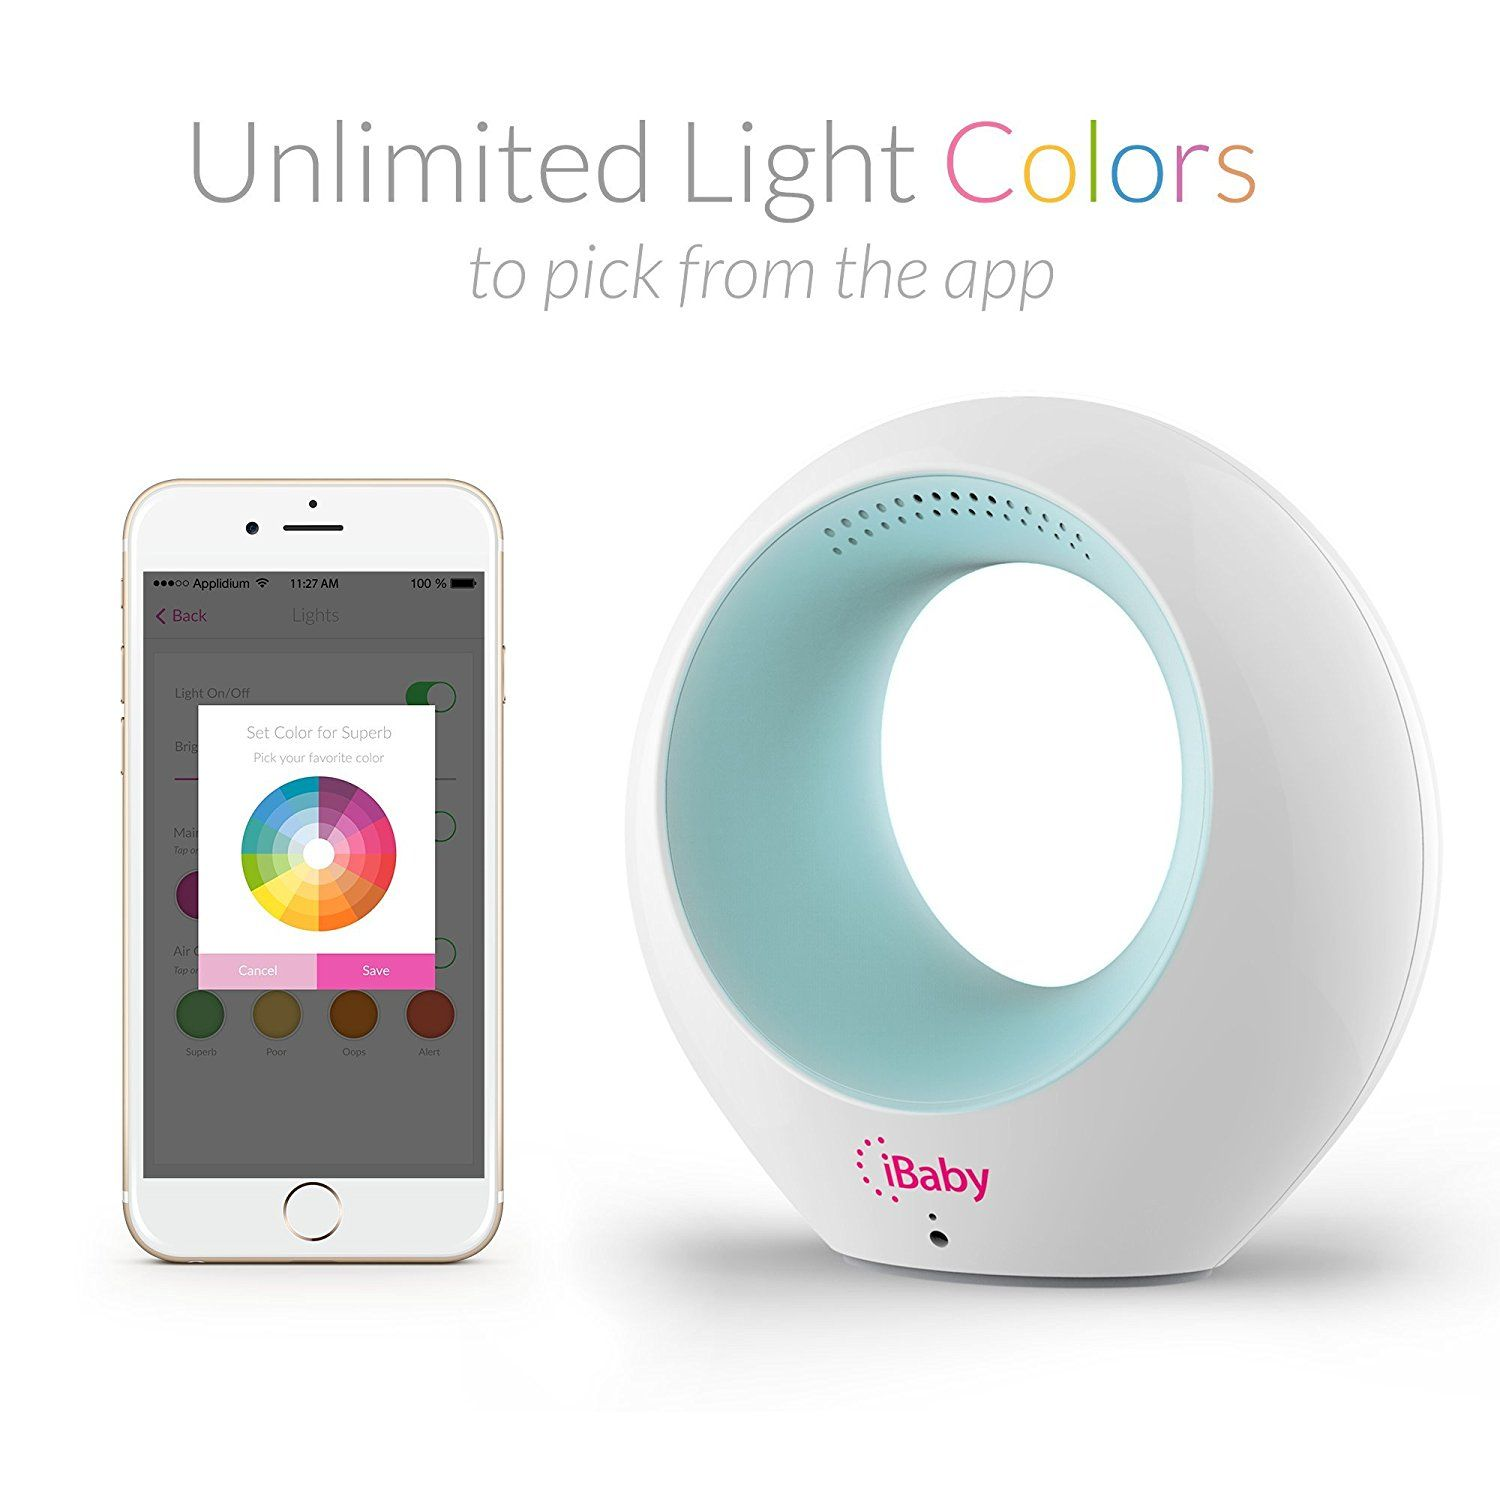 iBaby Air is an air quality monitor and purifier which